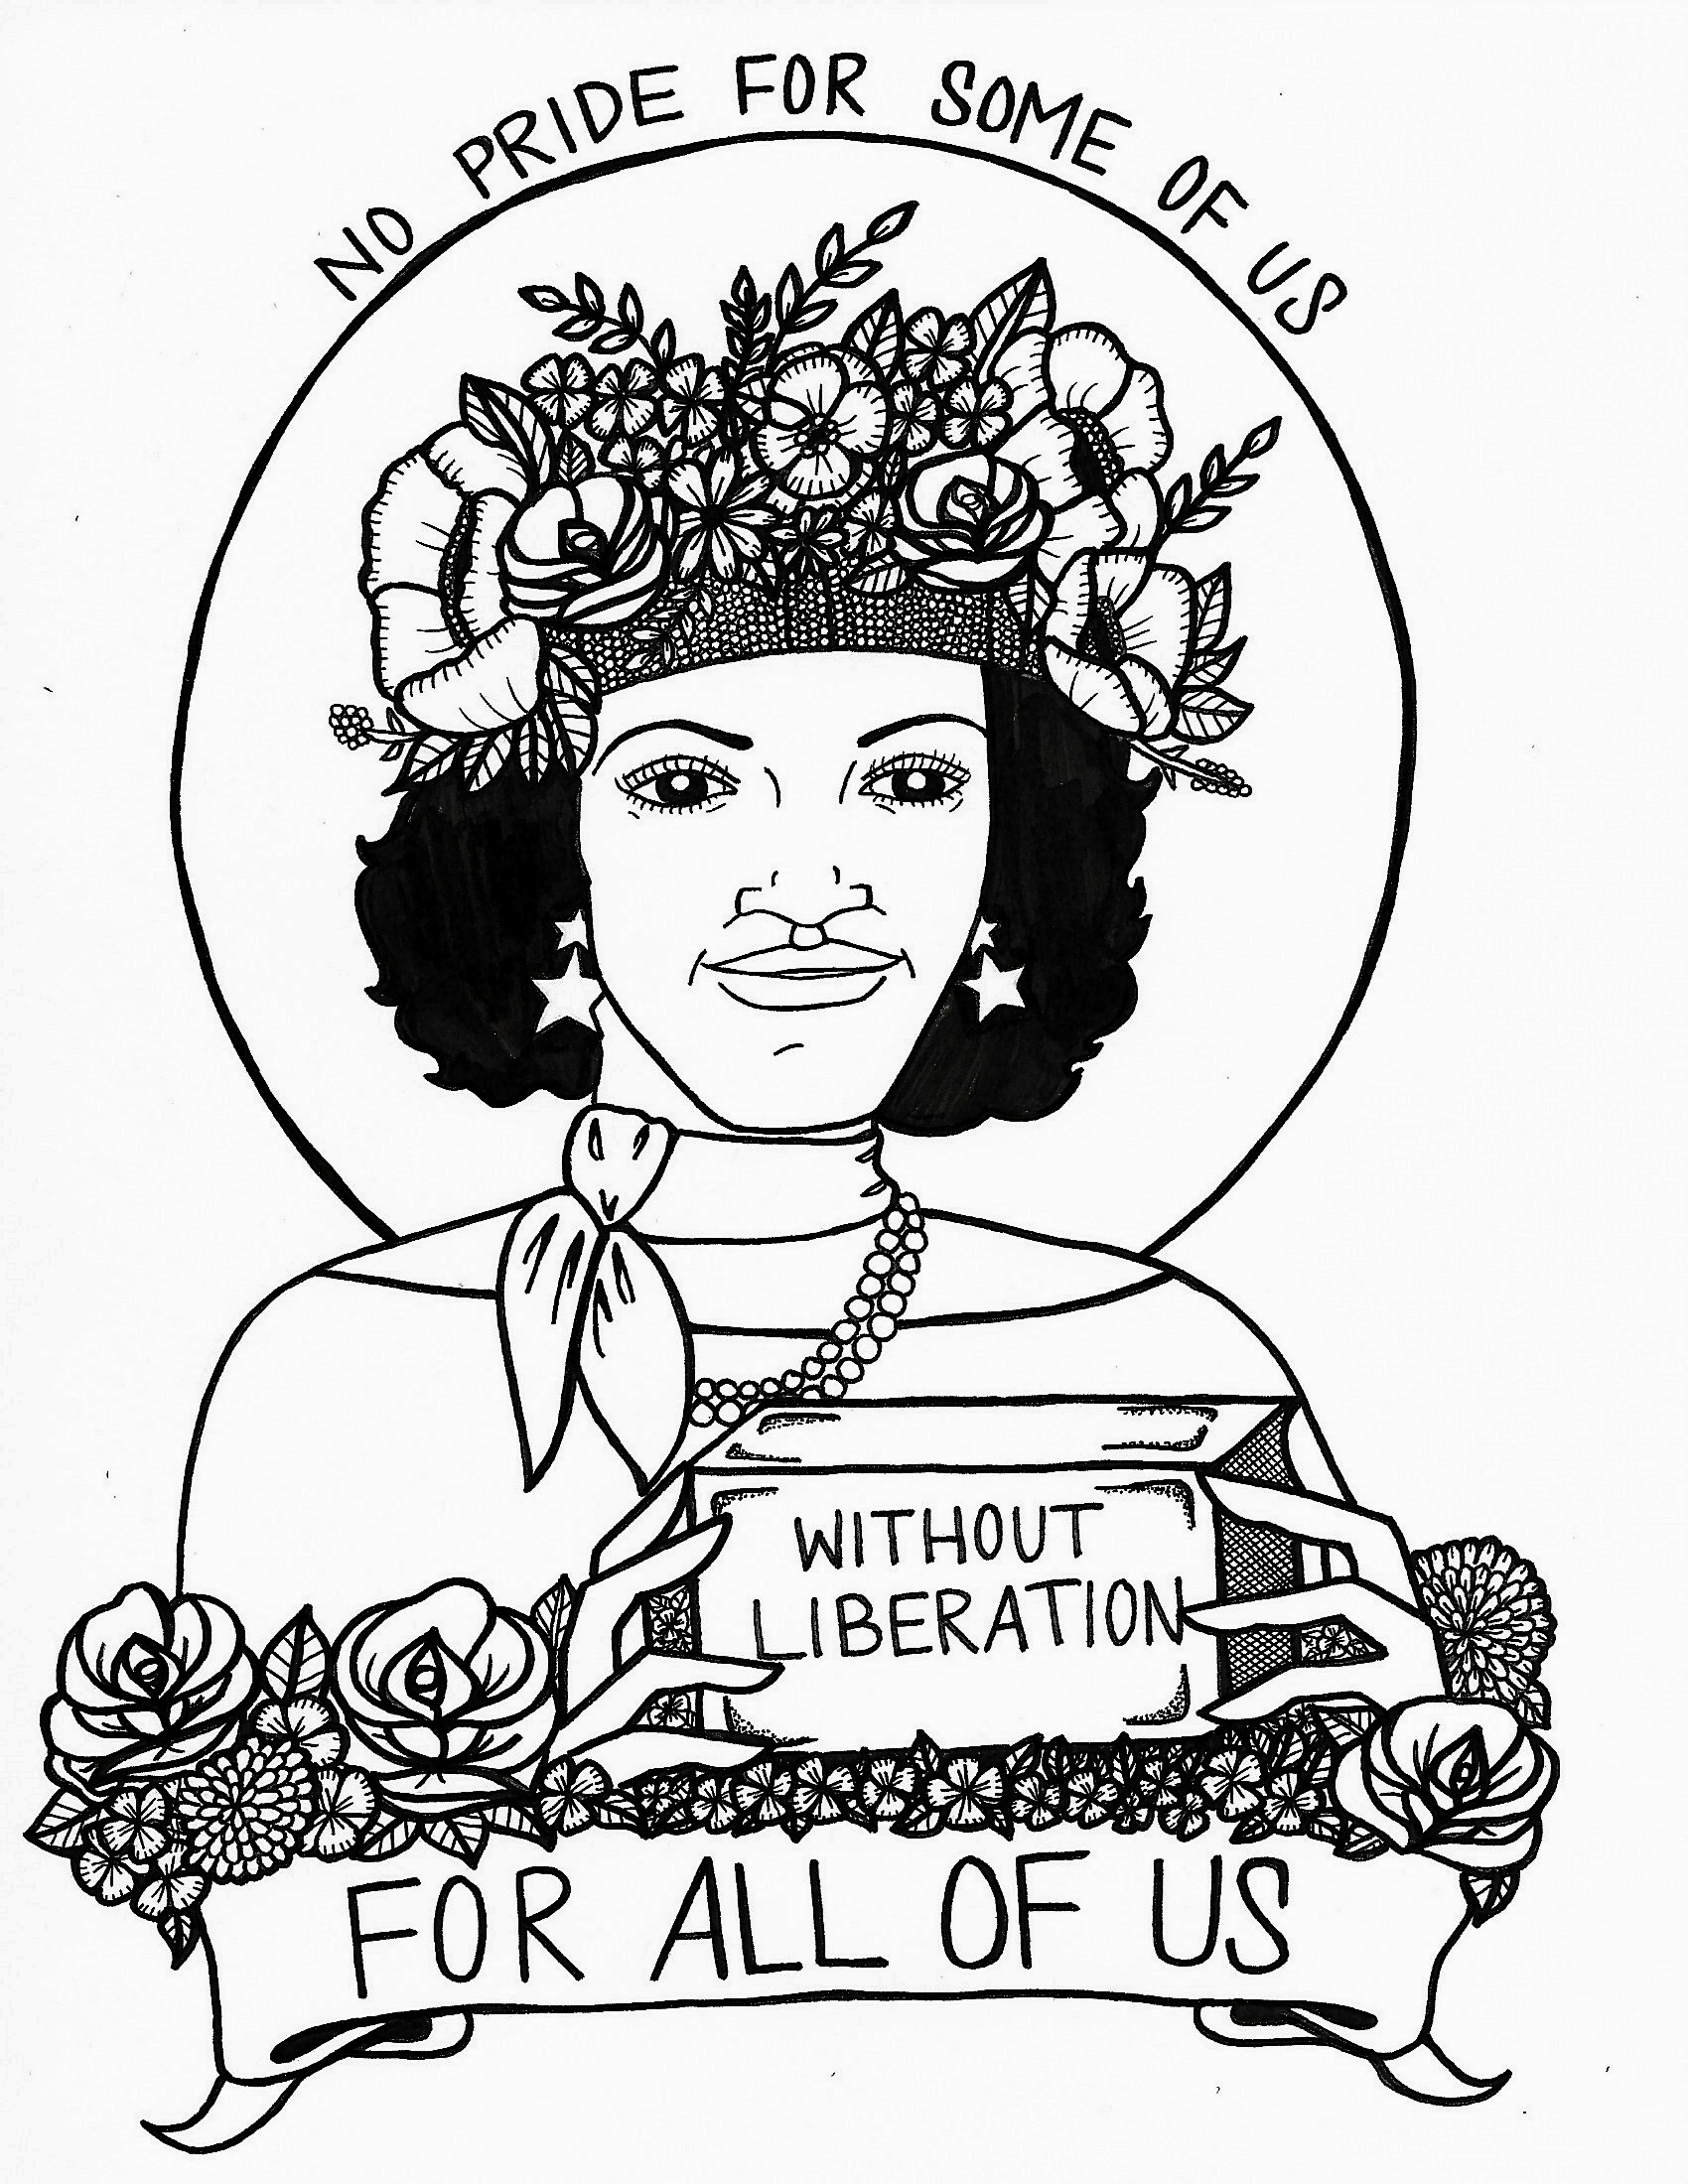 "Colouring page of civil rights activist Marsha P. Johnson. Marsha is shown wearing a floral crown, star earrings, a scarf and pearls. Text above the image reads ""No Pride For Some Of Us."" Marsha is holding a brick that says ""Without Liberation."" A floral banner at the bottom of the image reads ""For all of us."""